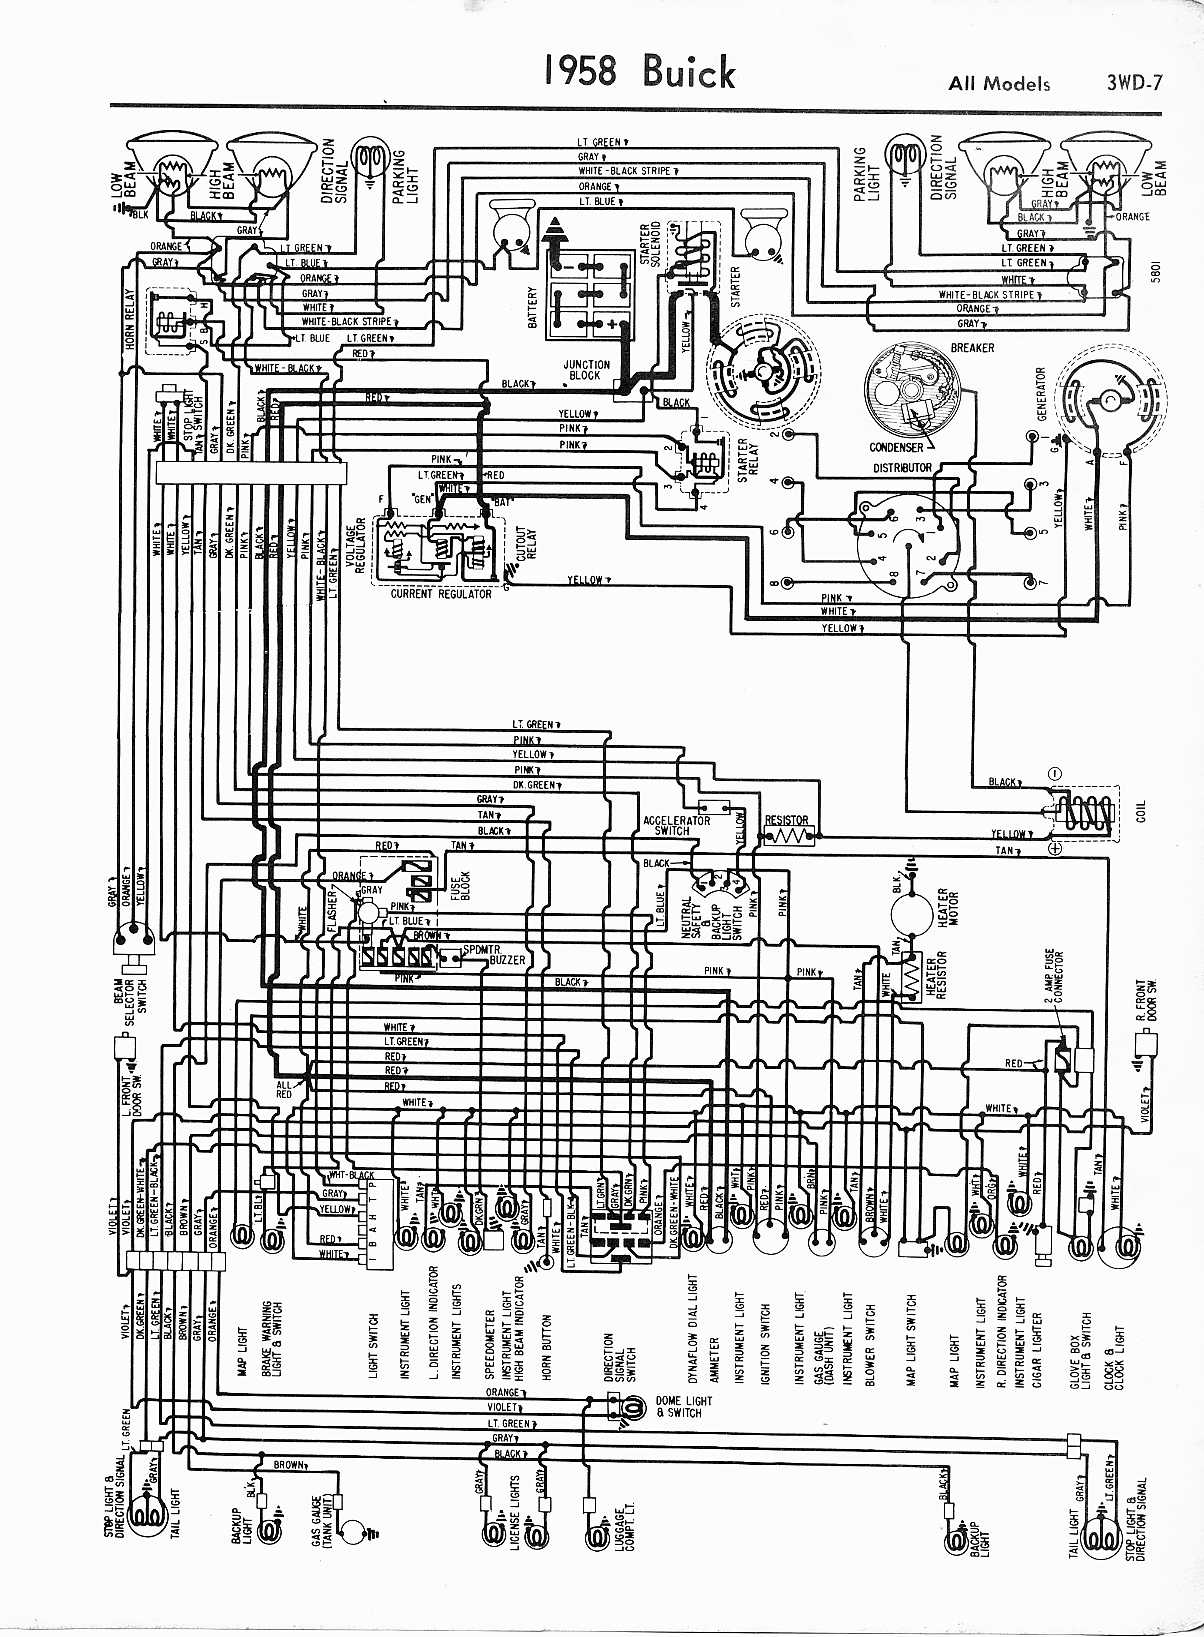 2000 Buick Lesabre Tail Light Wiring Diagram Simple Guide About Yamaha V Star 950 Limited Fuse Box Location Free